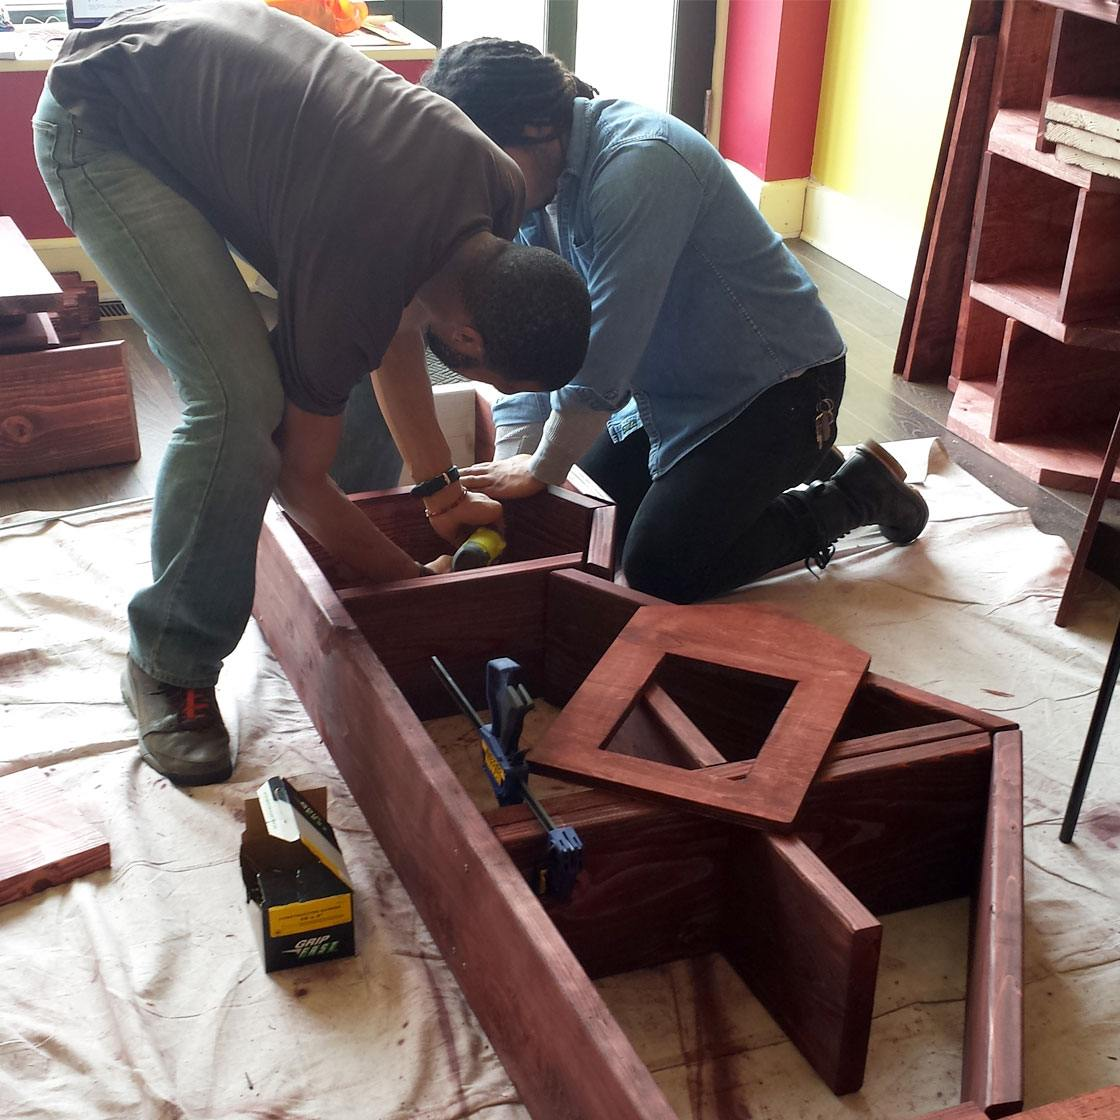 Several people building a bookshelf